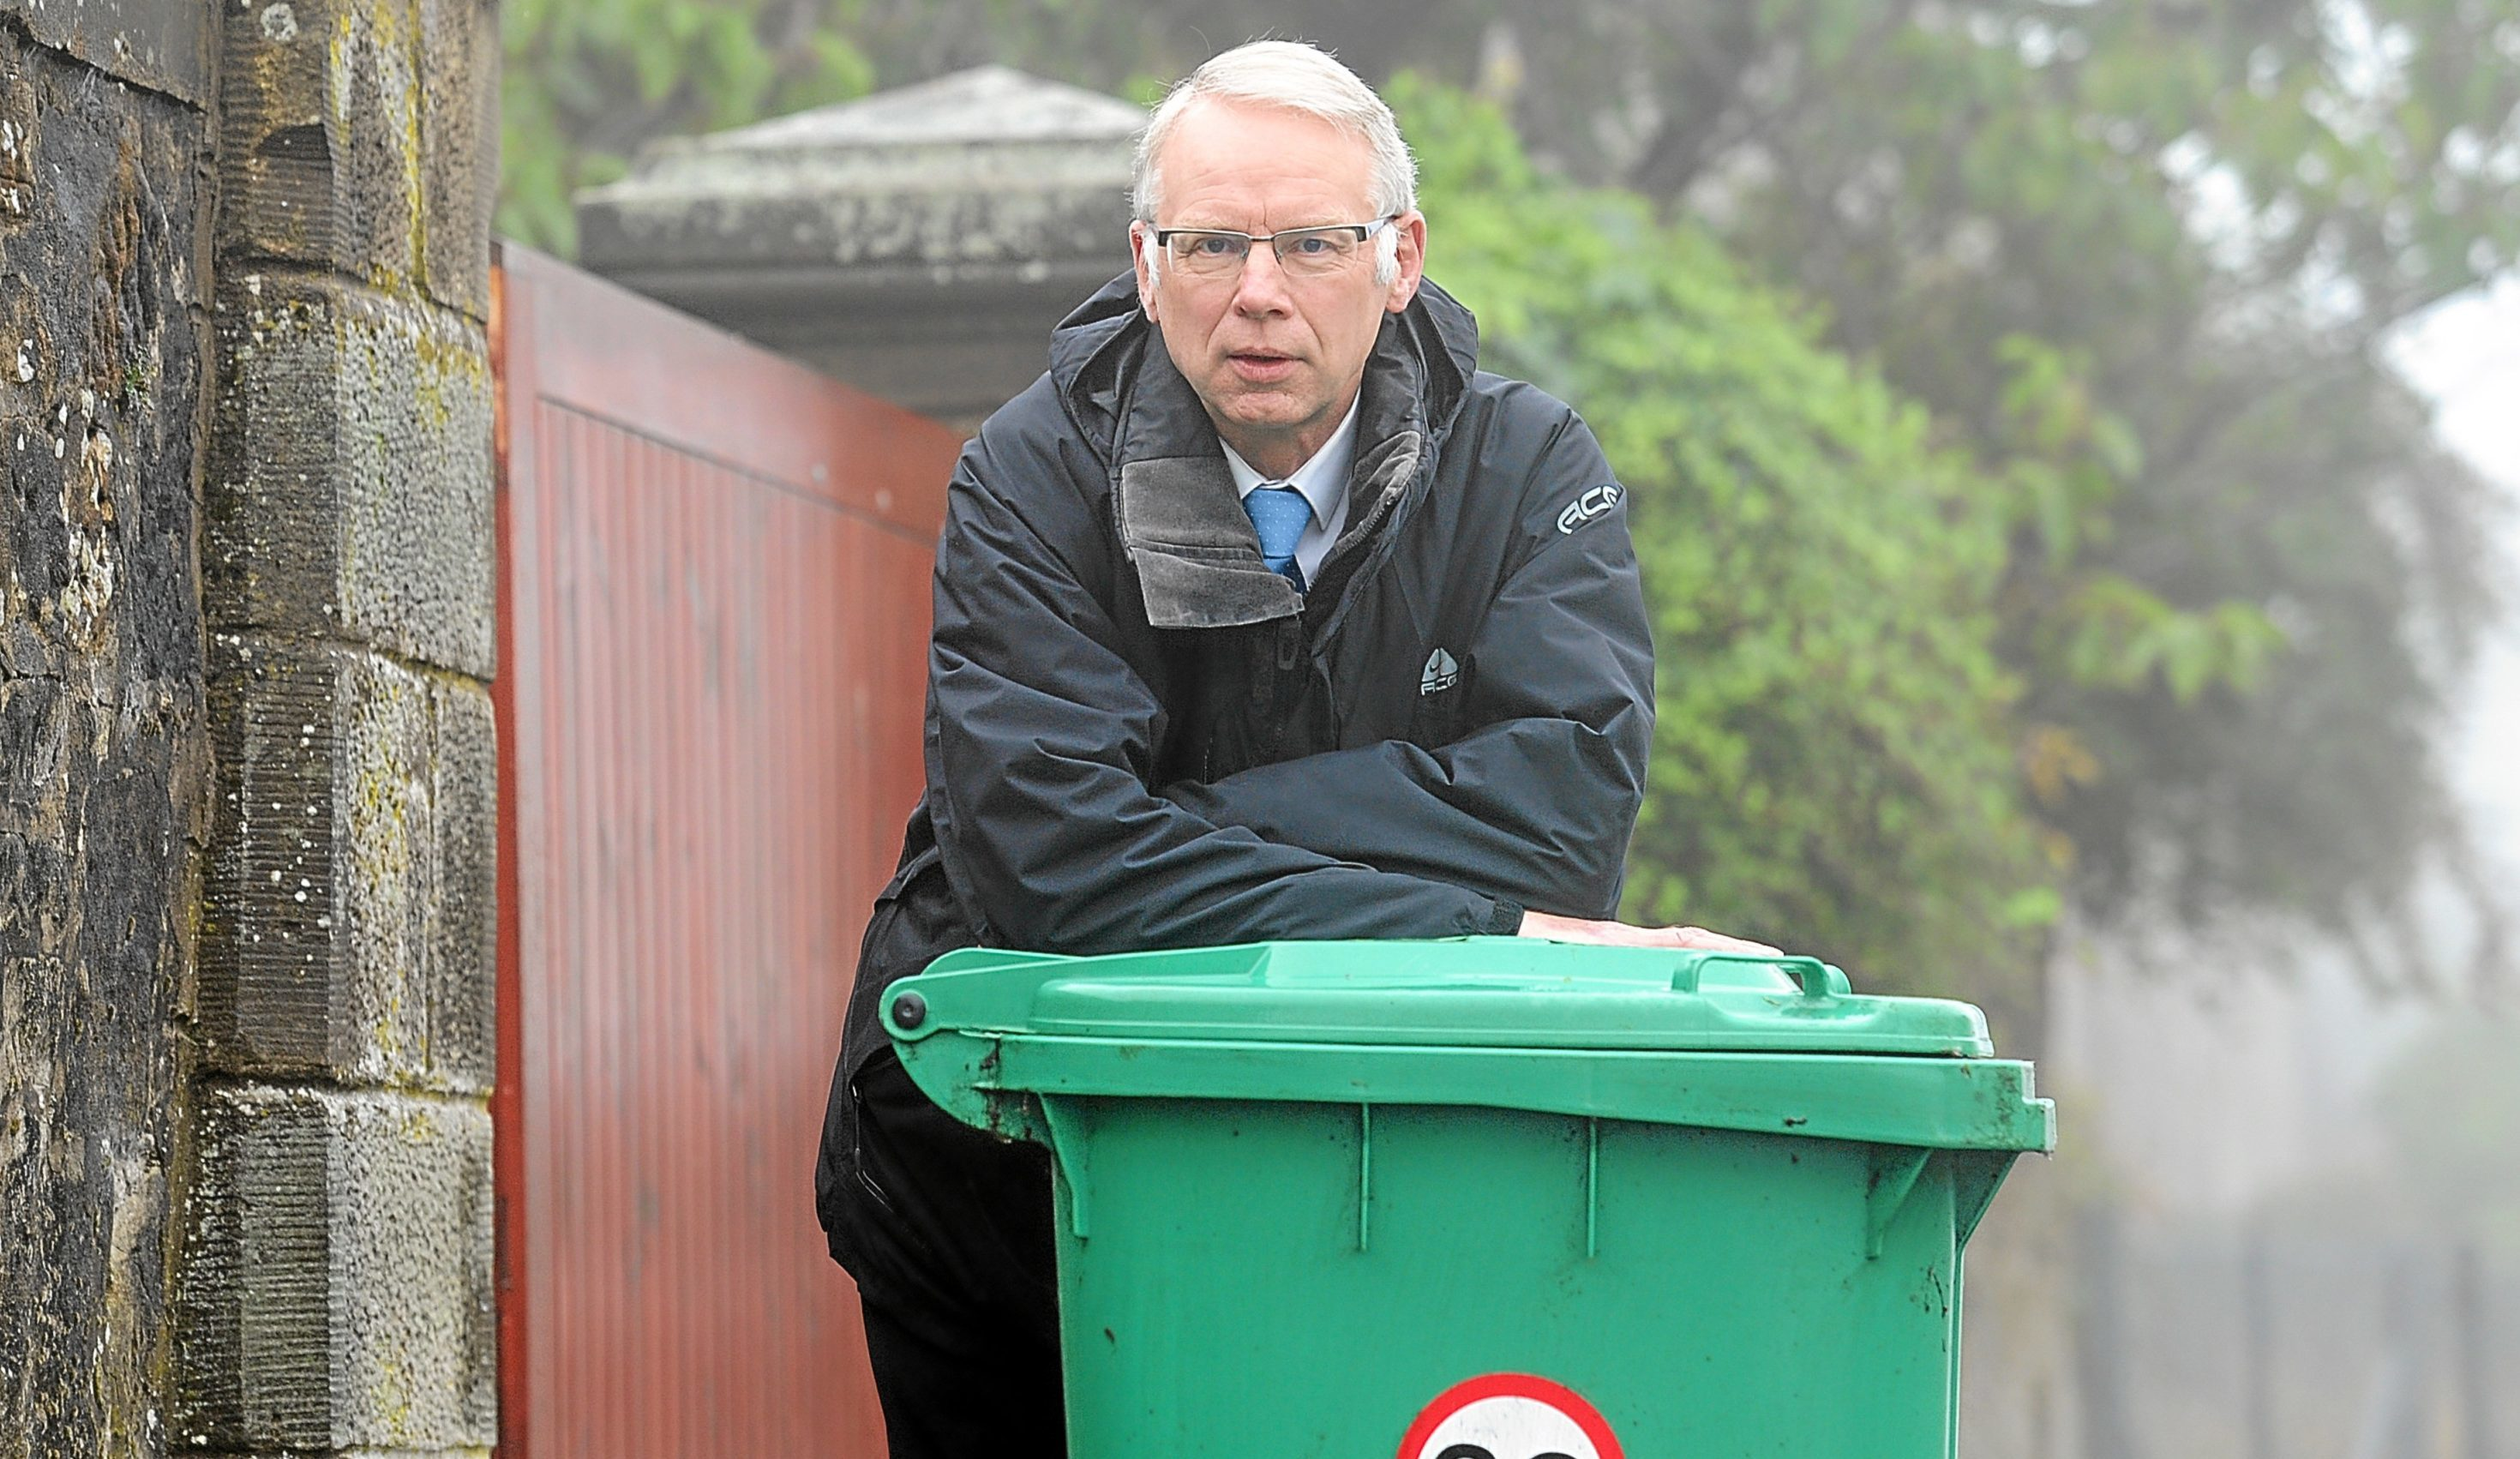 Glenrothes councillor John Wincott with one of his bins.